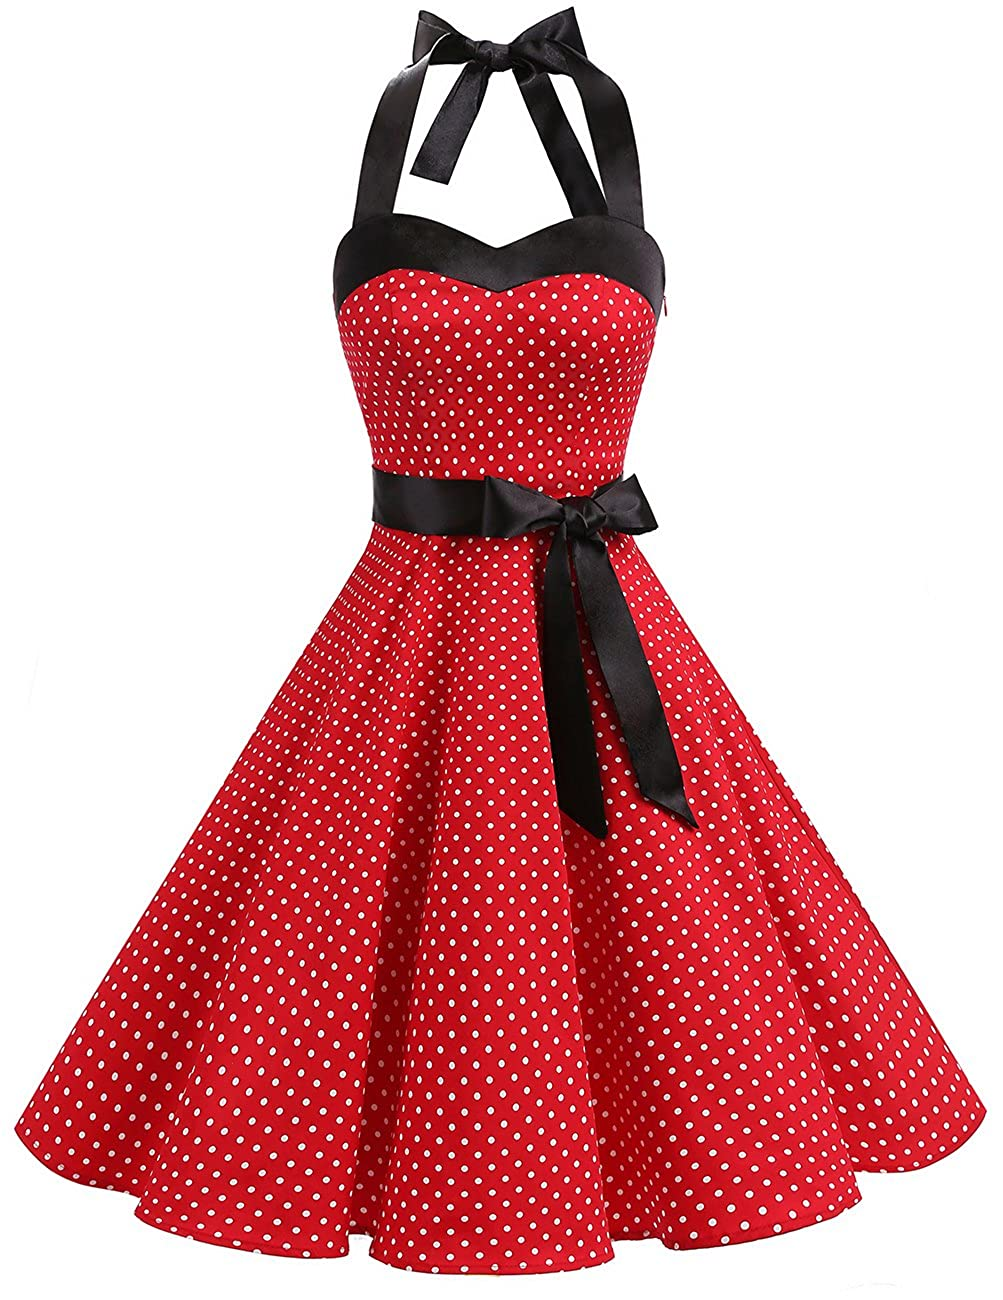 TALLA L. Dresstells® Halter 50s Rockabilly Polka Dots Audrey Dress Retro Cocktail Dress Red Small White Dot L